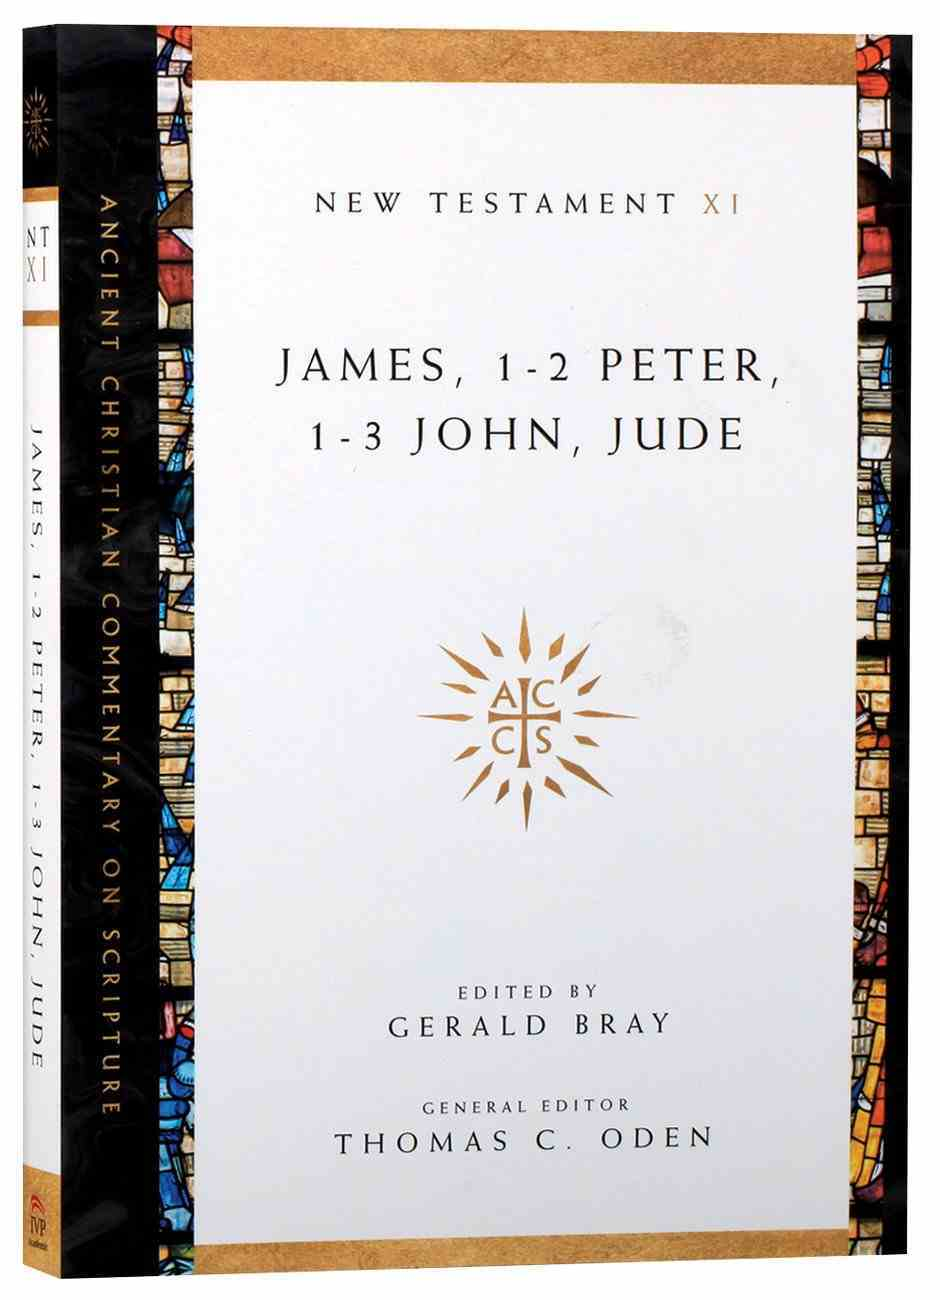 Accs NT: James, 1-2 Peter, 1-3 John, Jude (Ancient Christian Commentary On Scripture: New Testament Series) Paperback